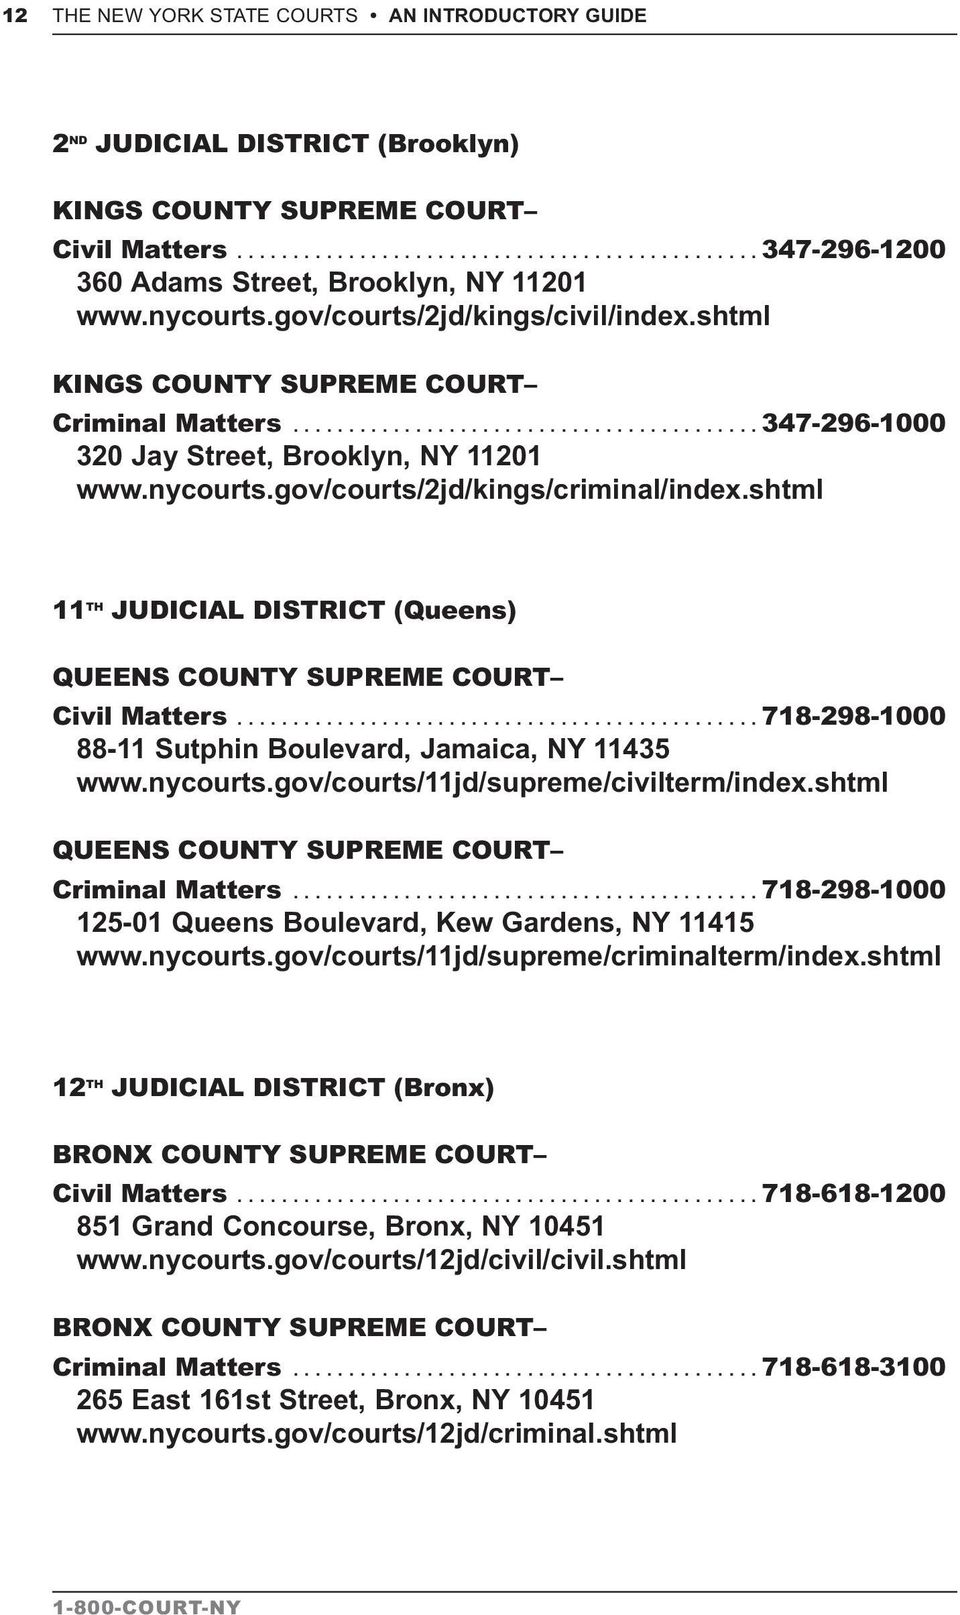 shtml 11 TH JUDICIAL DISTRICT (Queens) QUEENS COUNTY SUPREME COURT Civil Matters...718-298-1000 88-11 Sutphin Boulevard, Jamaica, NY 11435 www.nycourts.gov/courts/11jd/supreme/civilterm/index.